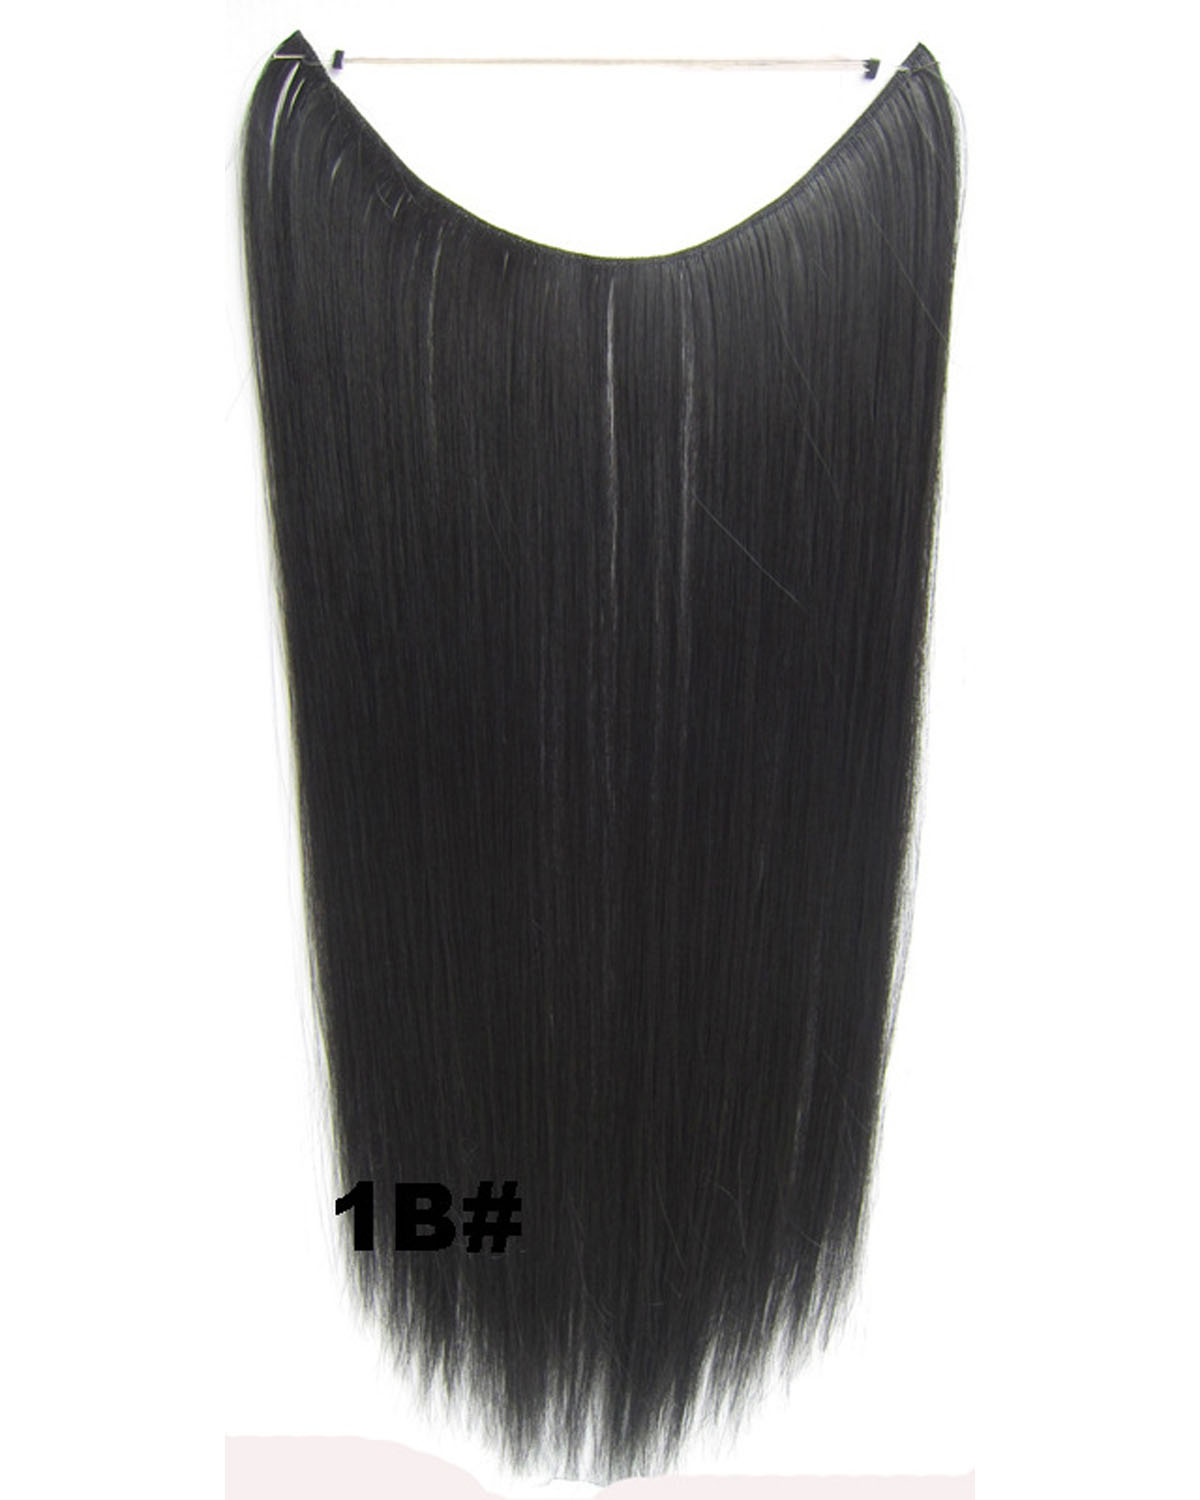 22 Inch Lady Glowing Straight long One Piece Miracle Wire Flip in Synthetic Hair Extension1B#